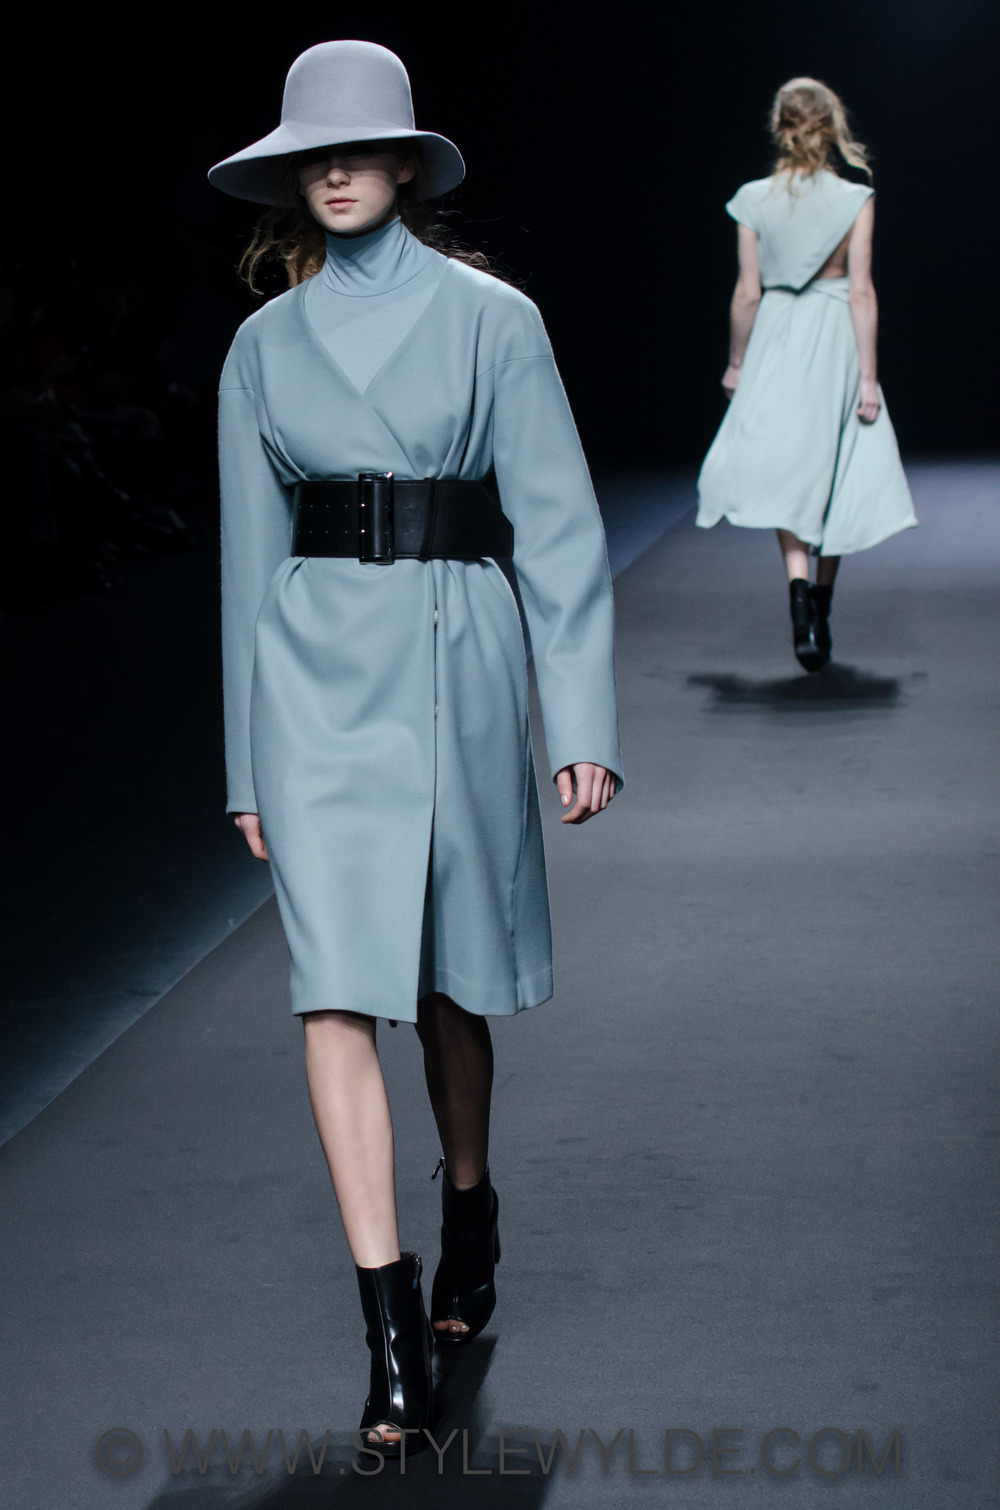 stylewylde_ADF_AW14_edited (15 of 22).jpg